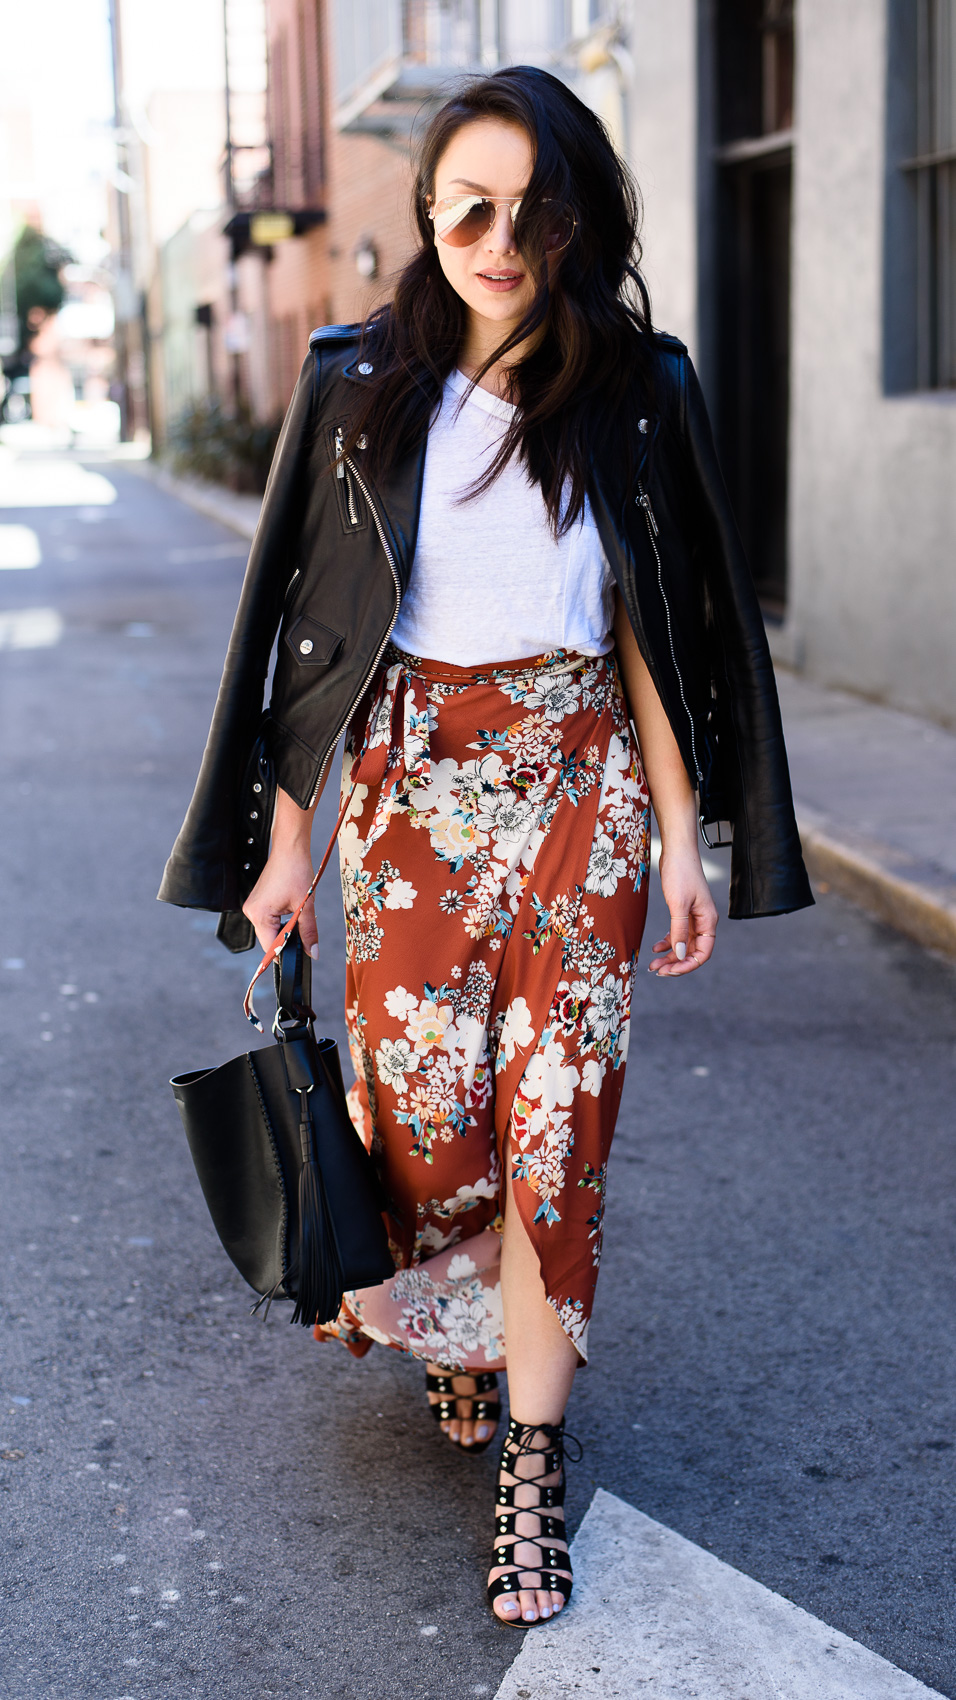 zara-floral-wrap-skirt-maxi-skirt-all-saints-pearl-bag-loeffler-randall-hana-2